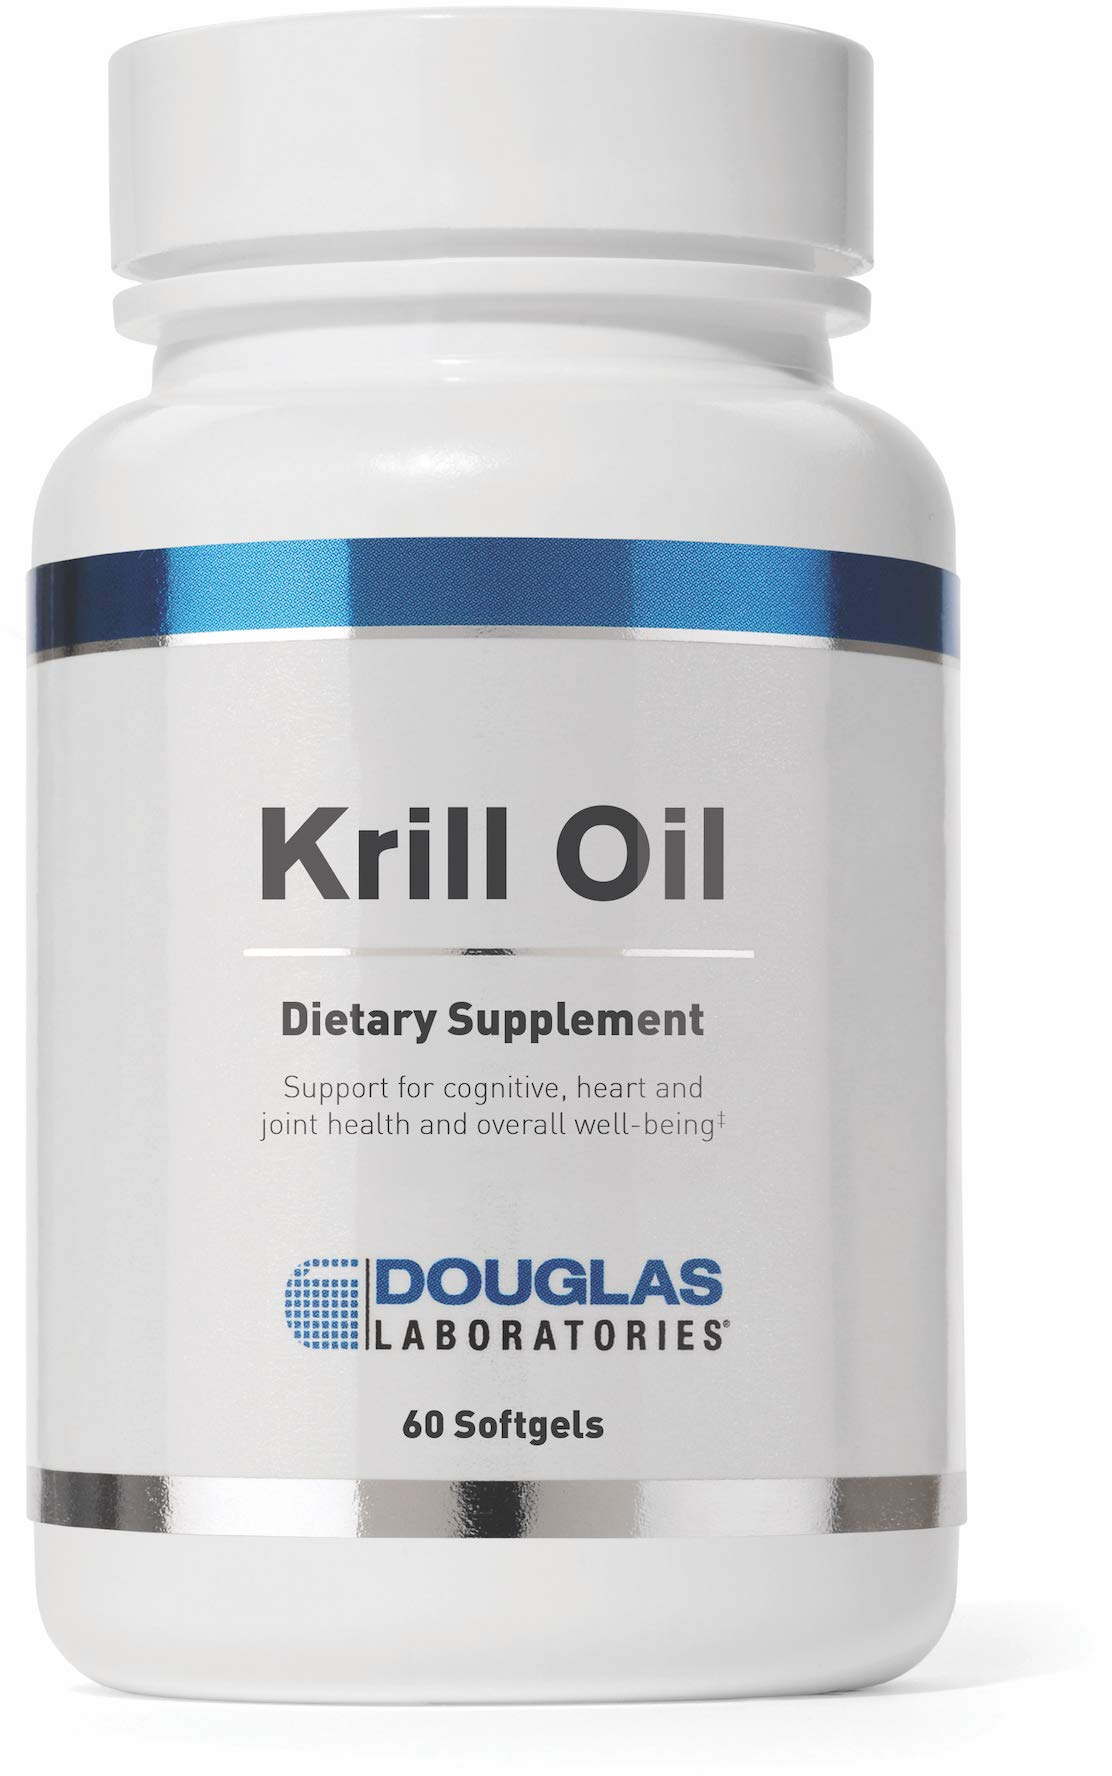 Douglas Laboratories - Krill Oil - Supports Cognitive, Heart and Joint Health* - 60 Softgels by Douglas Laboratories